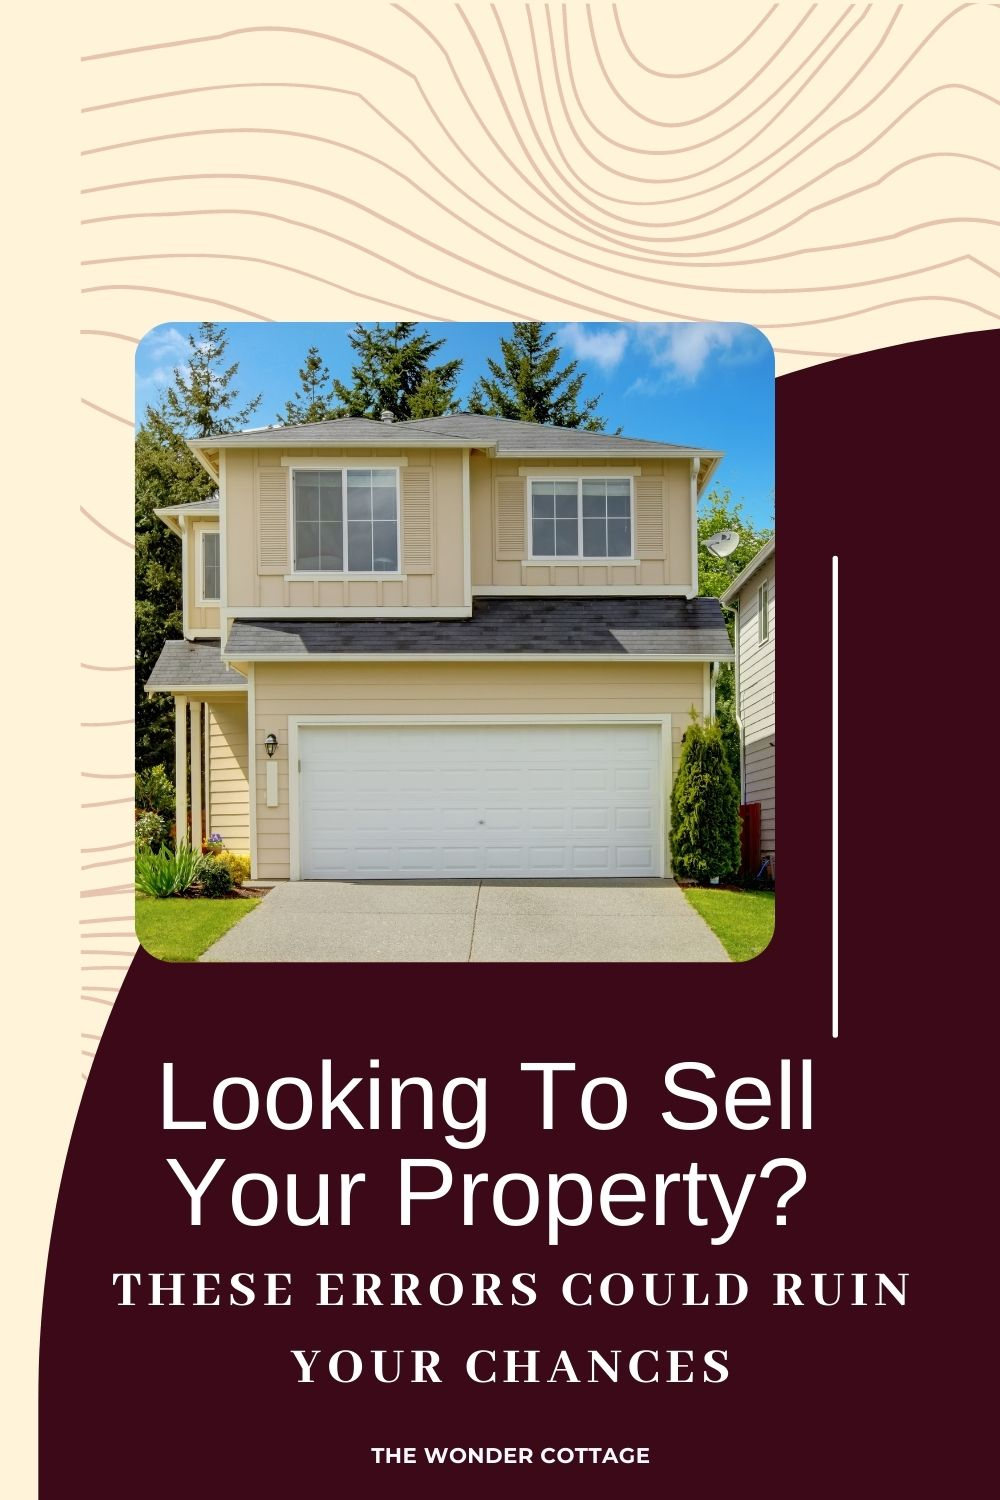 looking to sell your property? These errors could ruin your chances